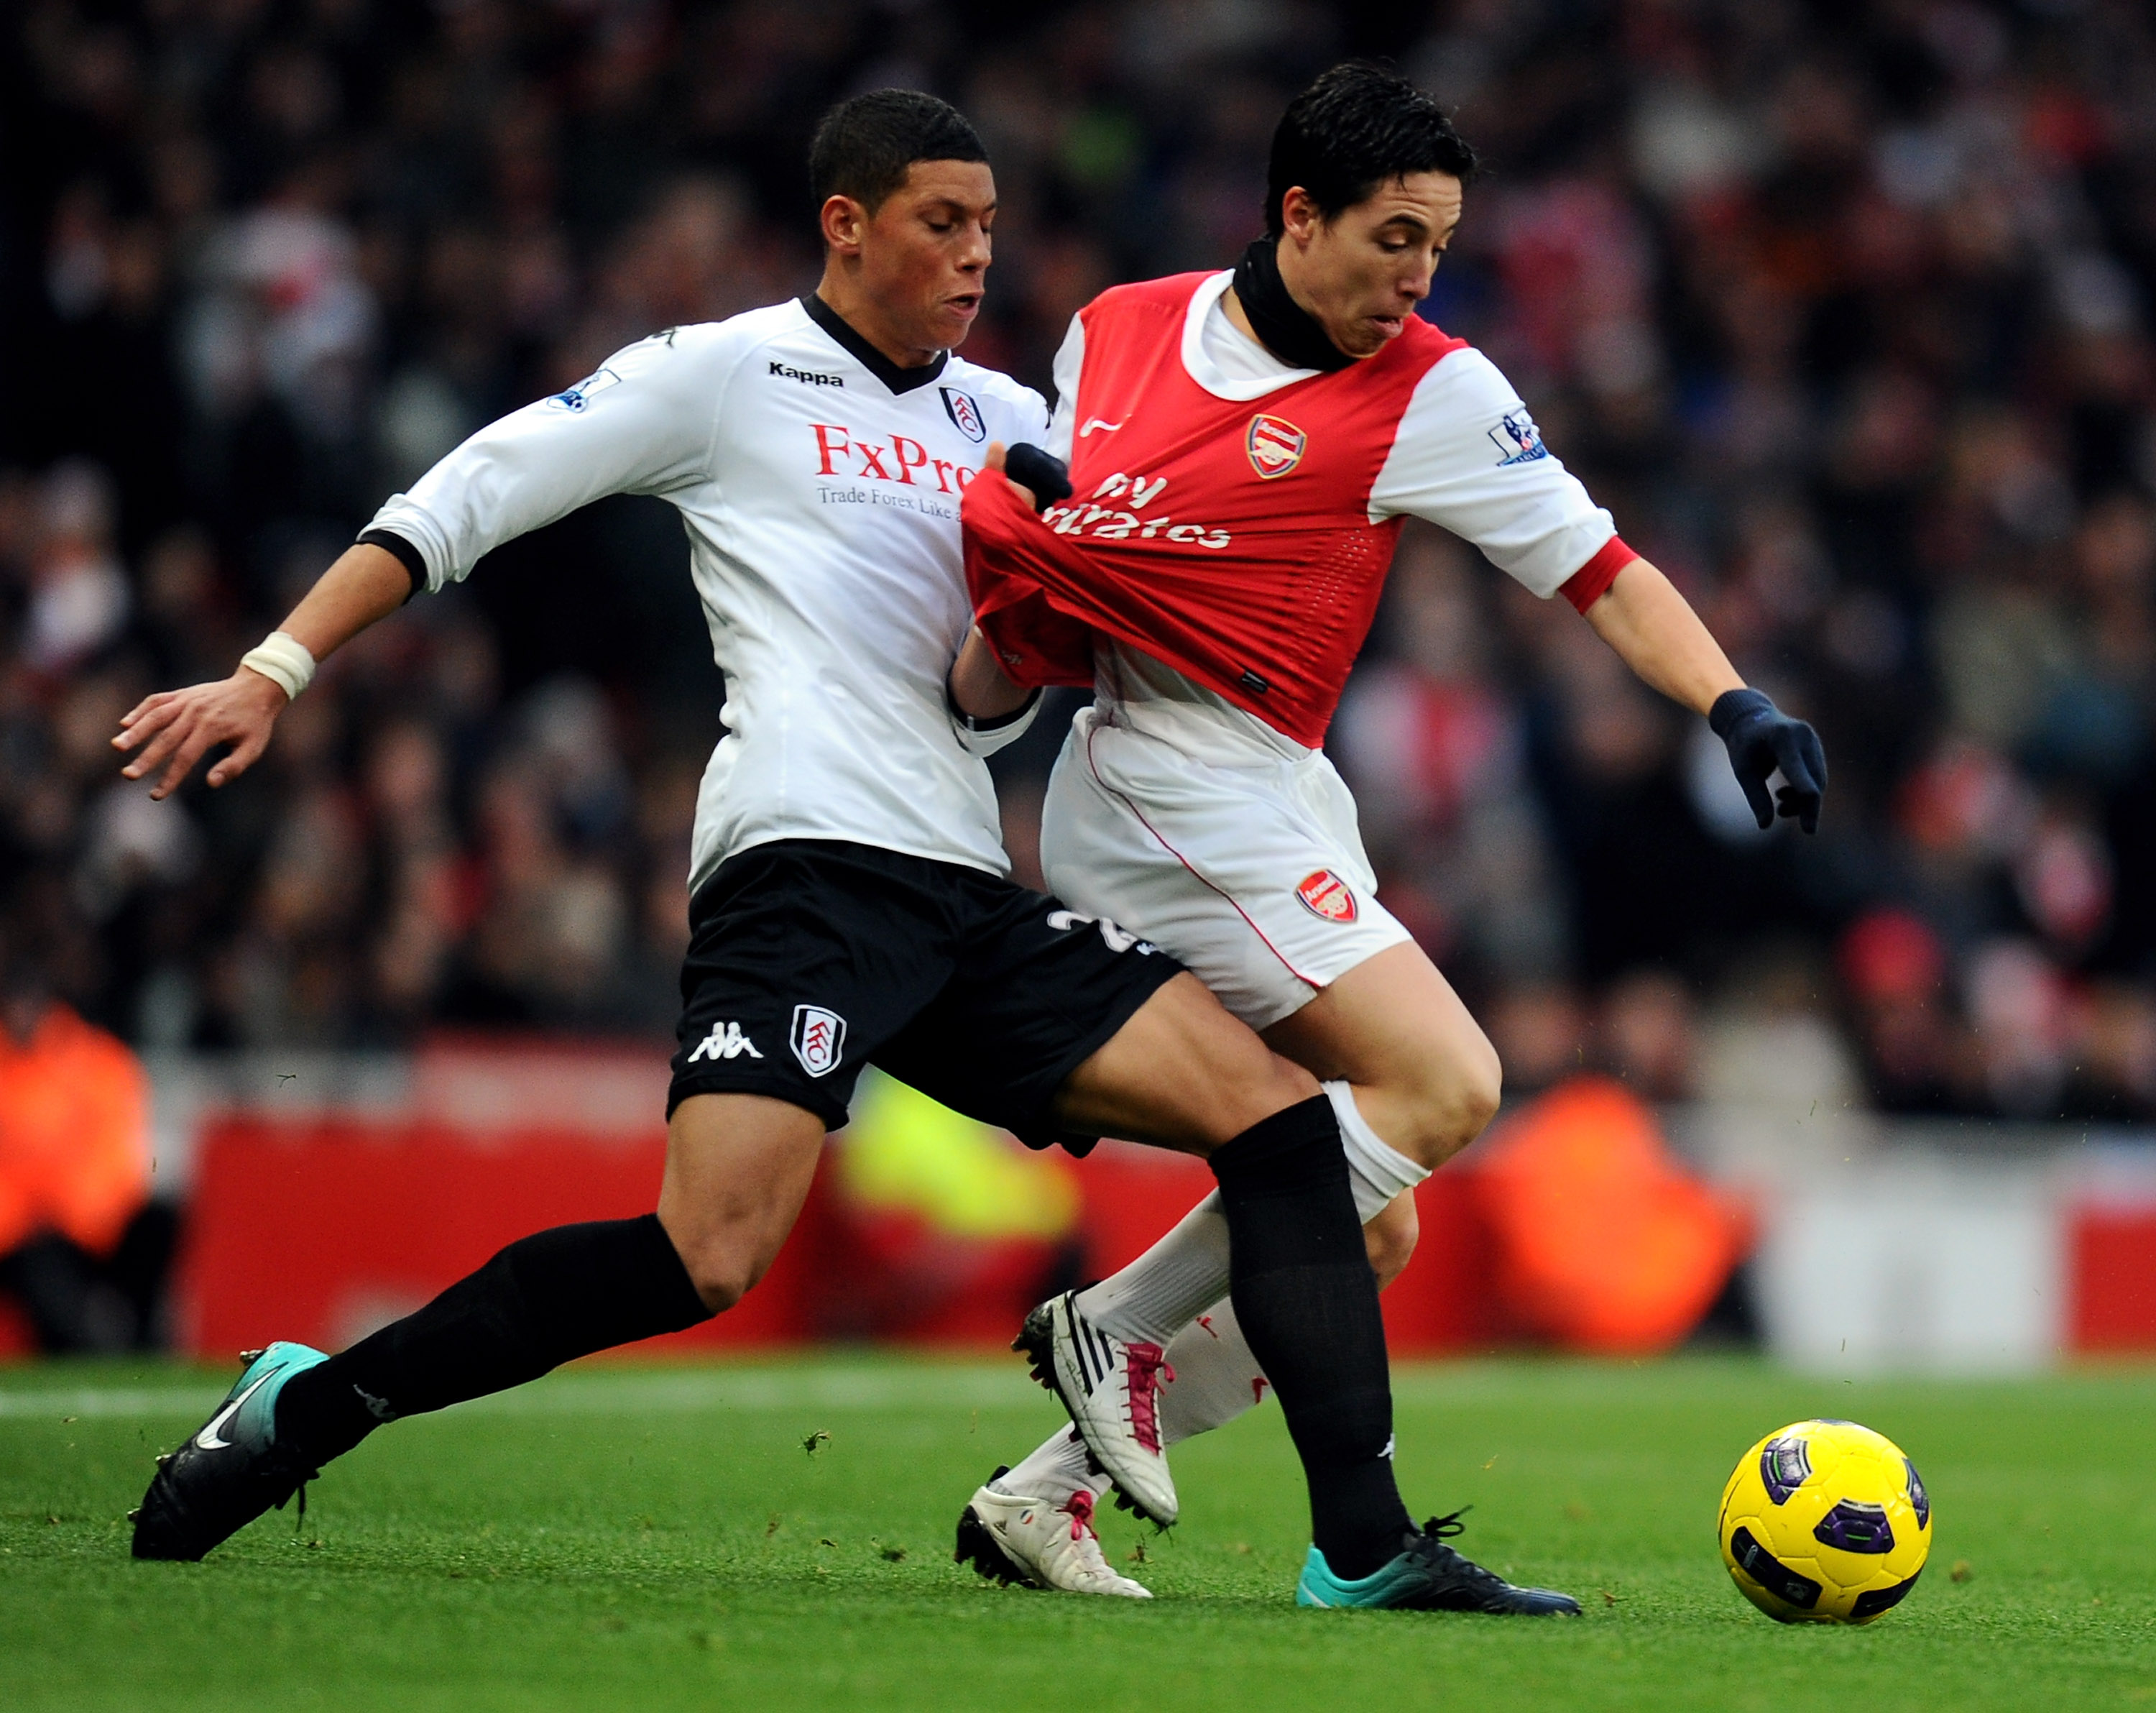 LONDON, ENGLAND - DECEMBER 04:  Samir Nasri of Arsenal (R) is tackled by Matthew Briggs of Fulham during the Barclays Premier League match between Arsenal and Fulham at the Emirates Stadium on December 4, 2010 in London, England.  (Photo by Mike Hewitt/Ge